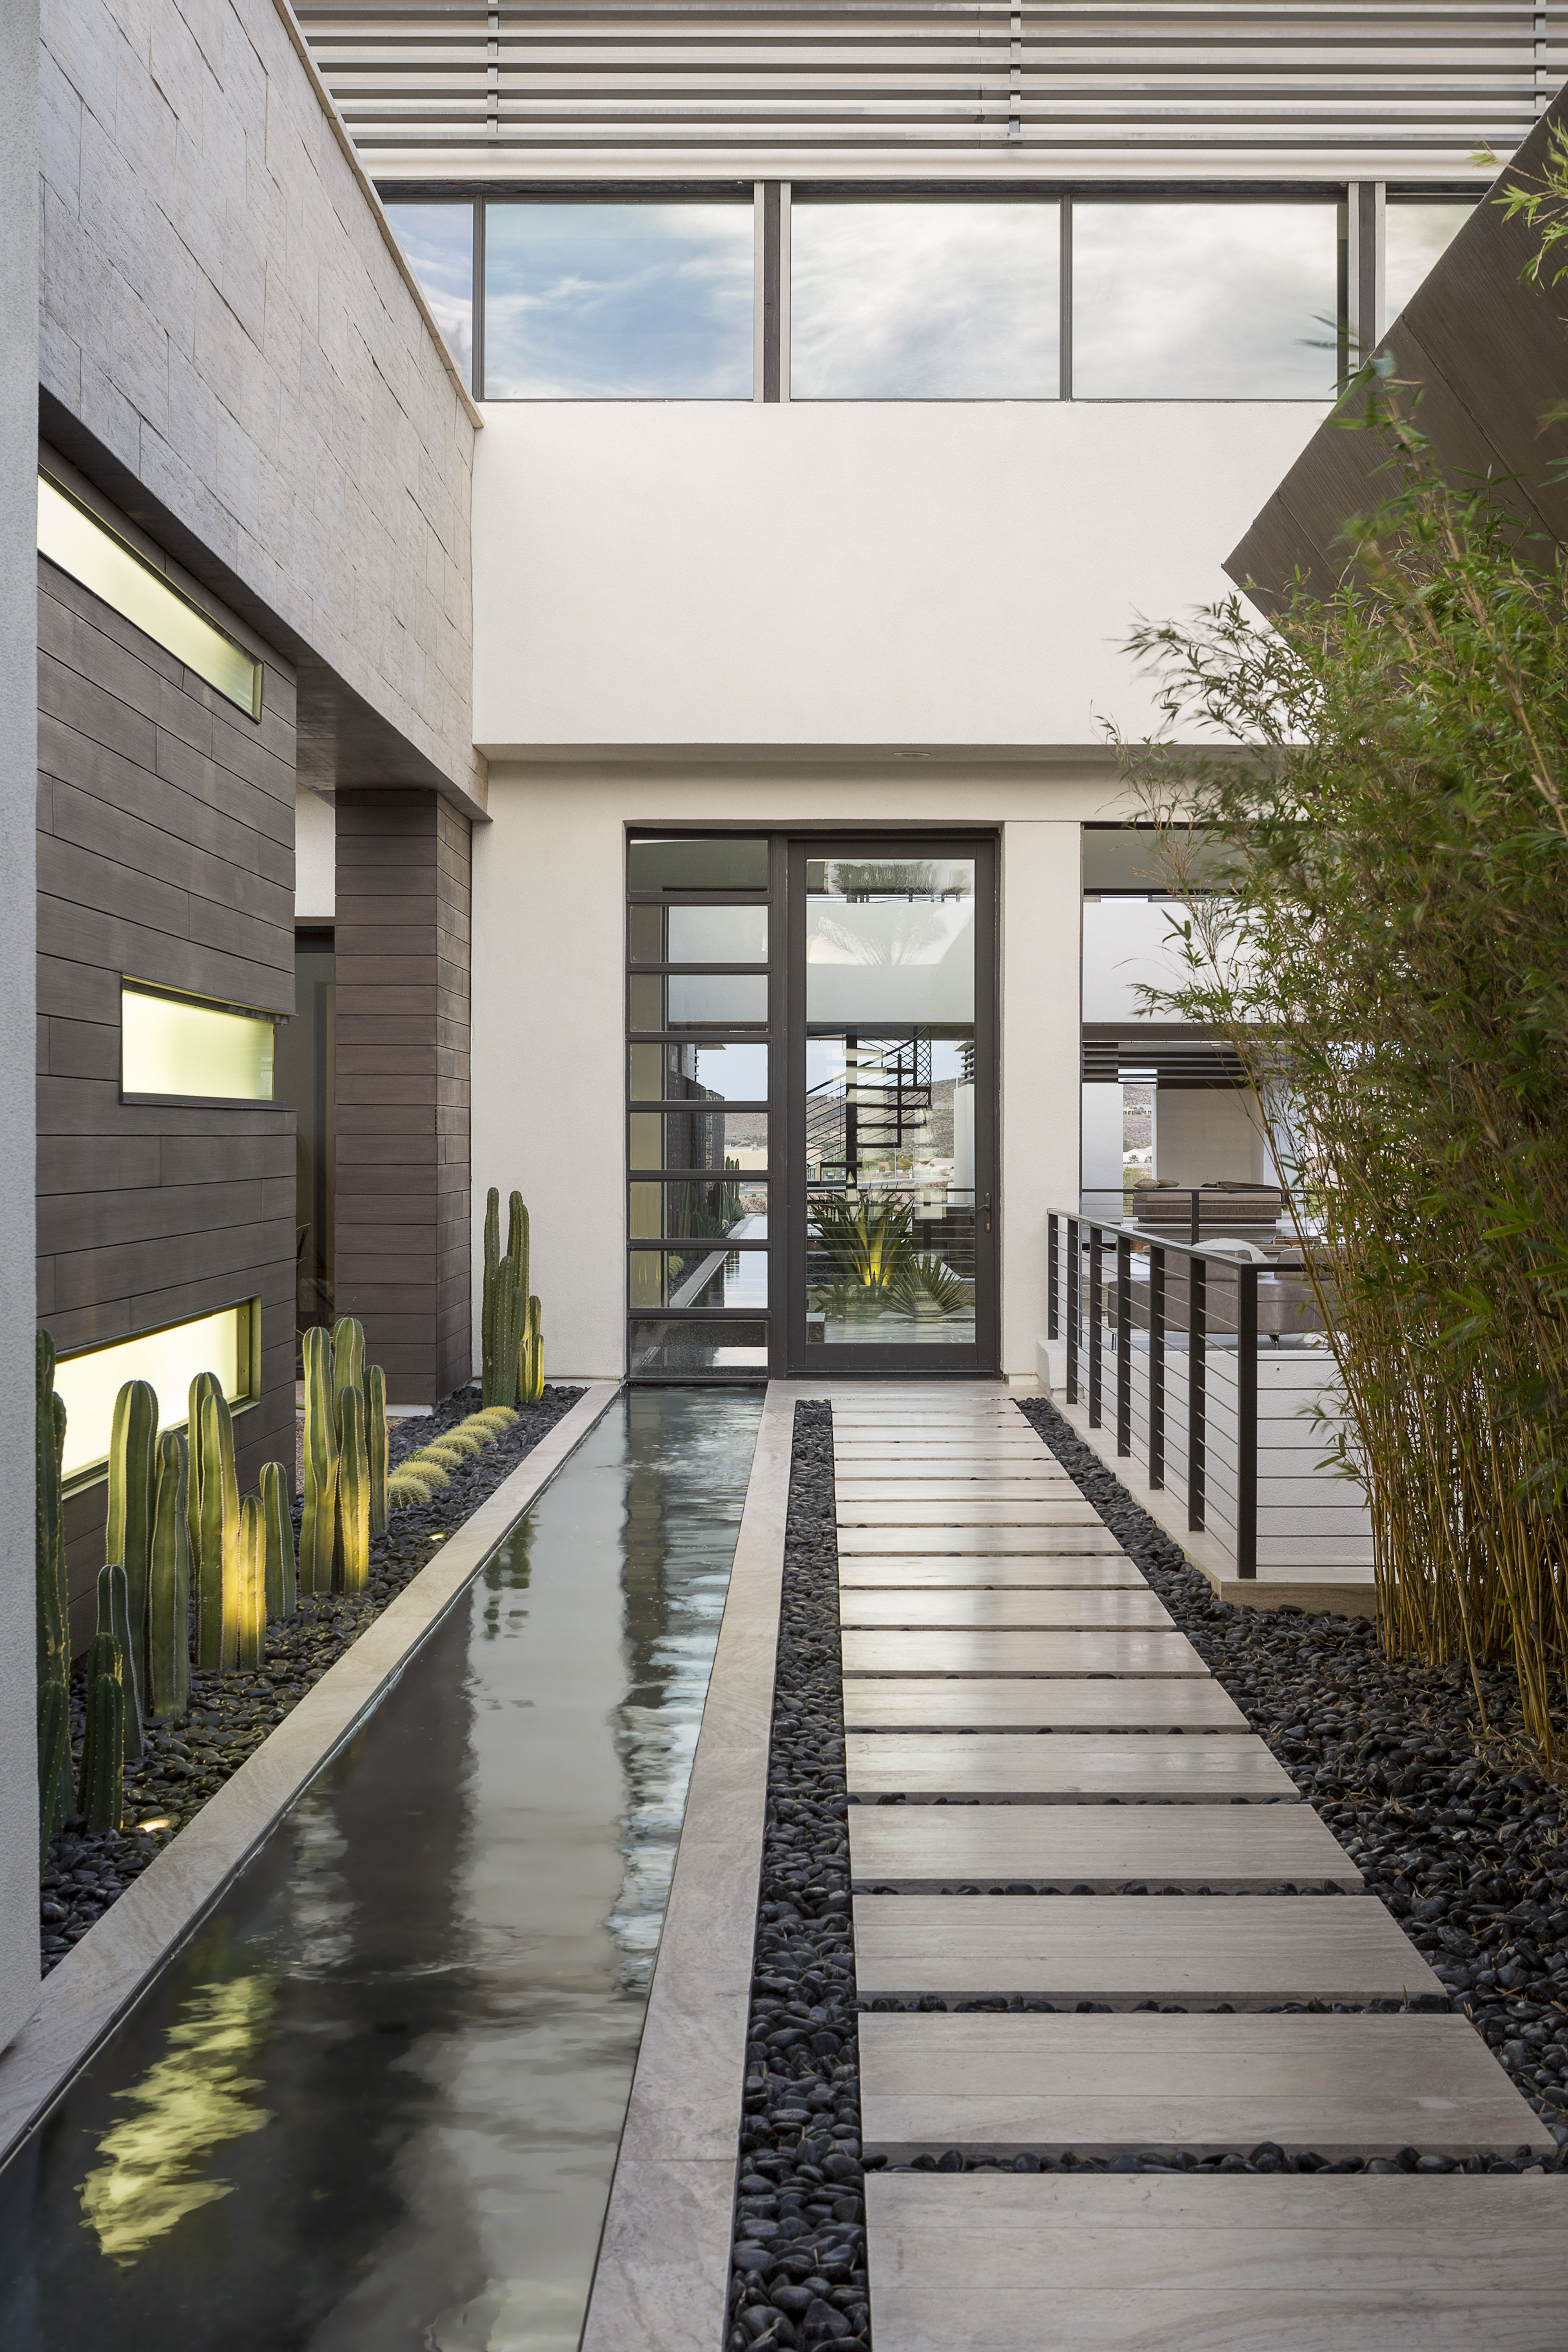 Newest Modern House Design Ideas Home Exterior Decorating Ideas Decorative Modern Entrance Gate: Blending Indoor And Outdoor Spaces And Incorporating Water In The Entry Way Of New American Home